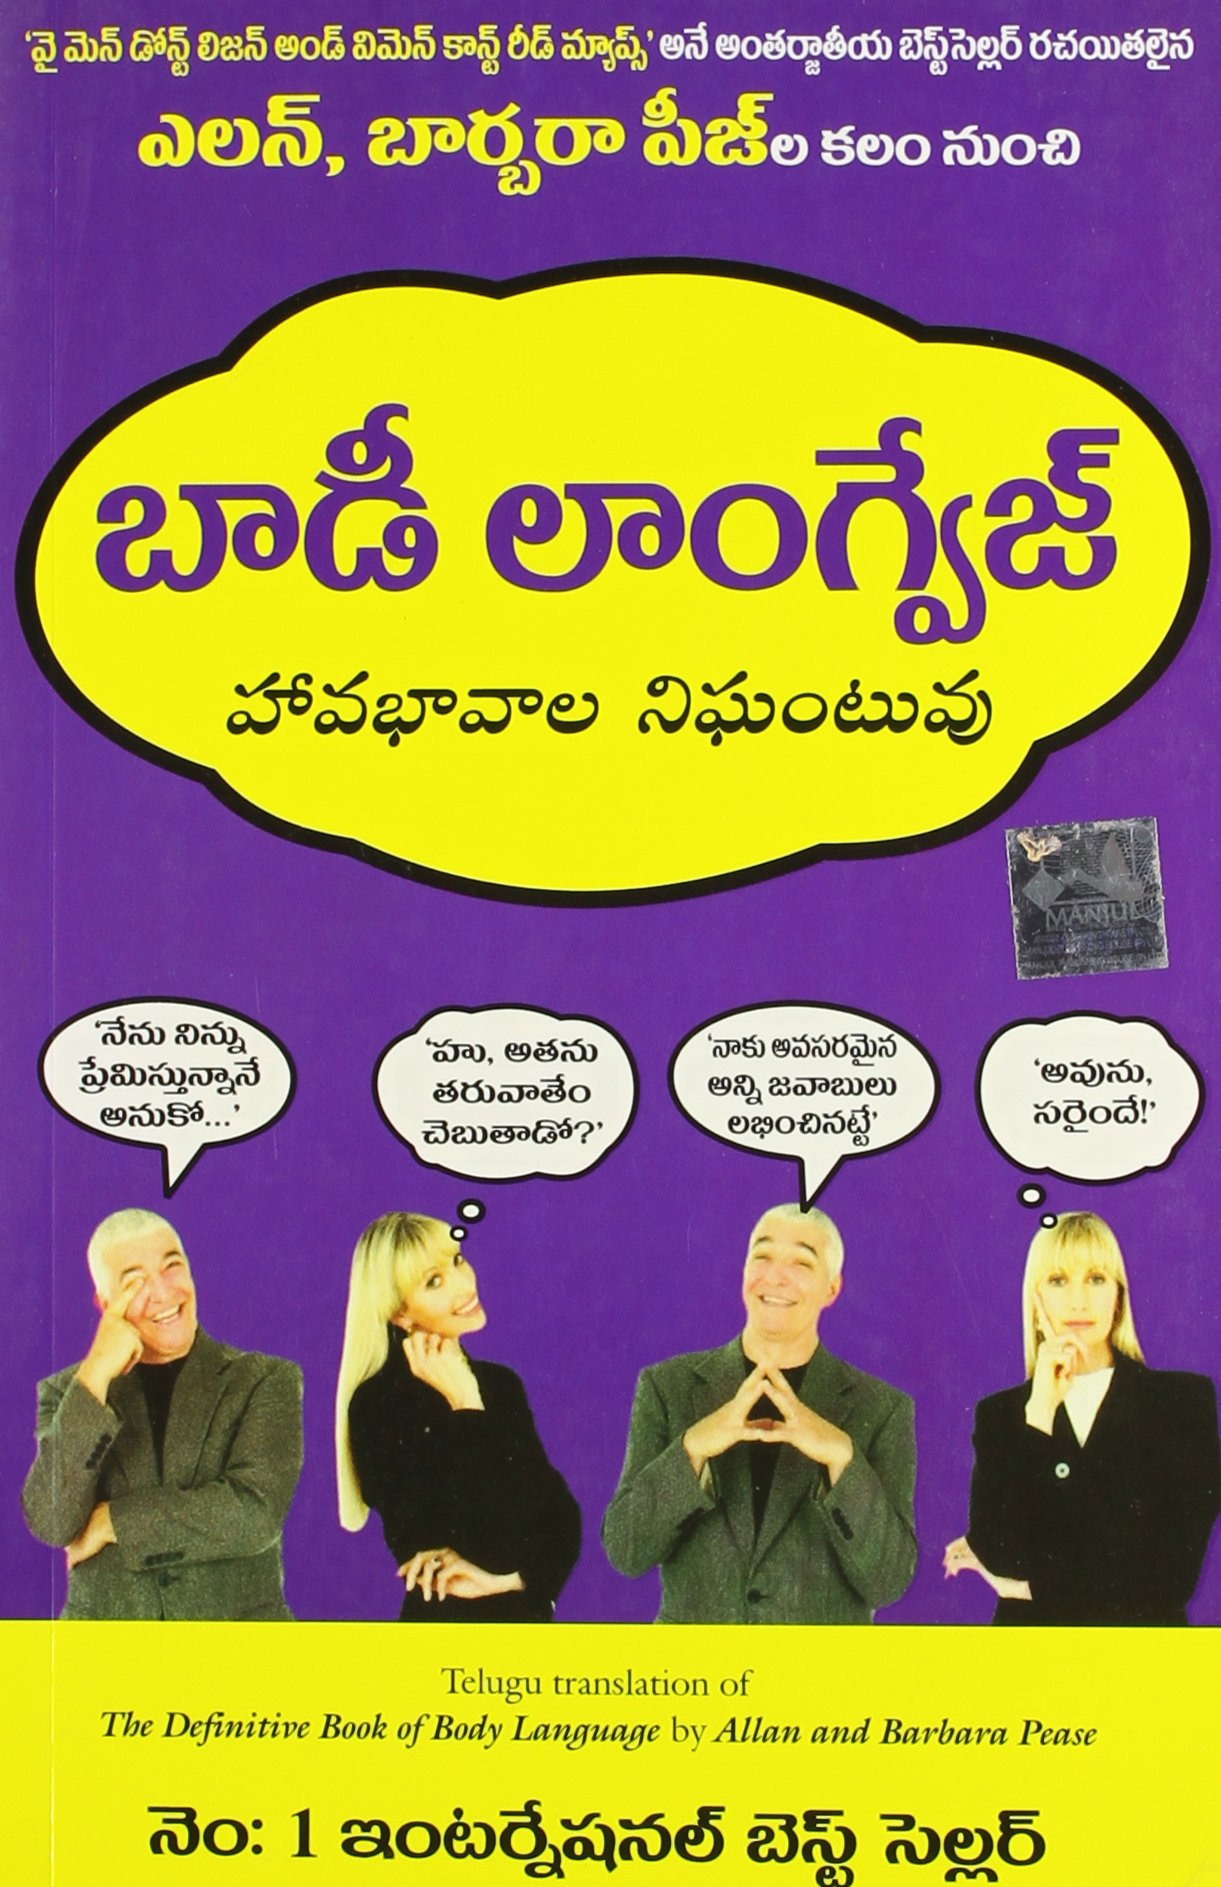 The definitive book of body language telugu edition allan barbara pease 9788183222532 amazon com books